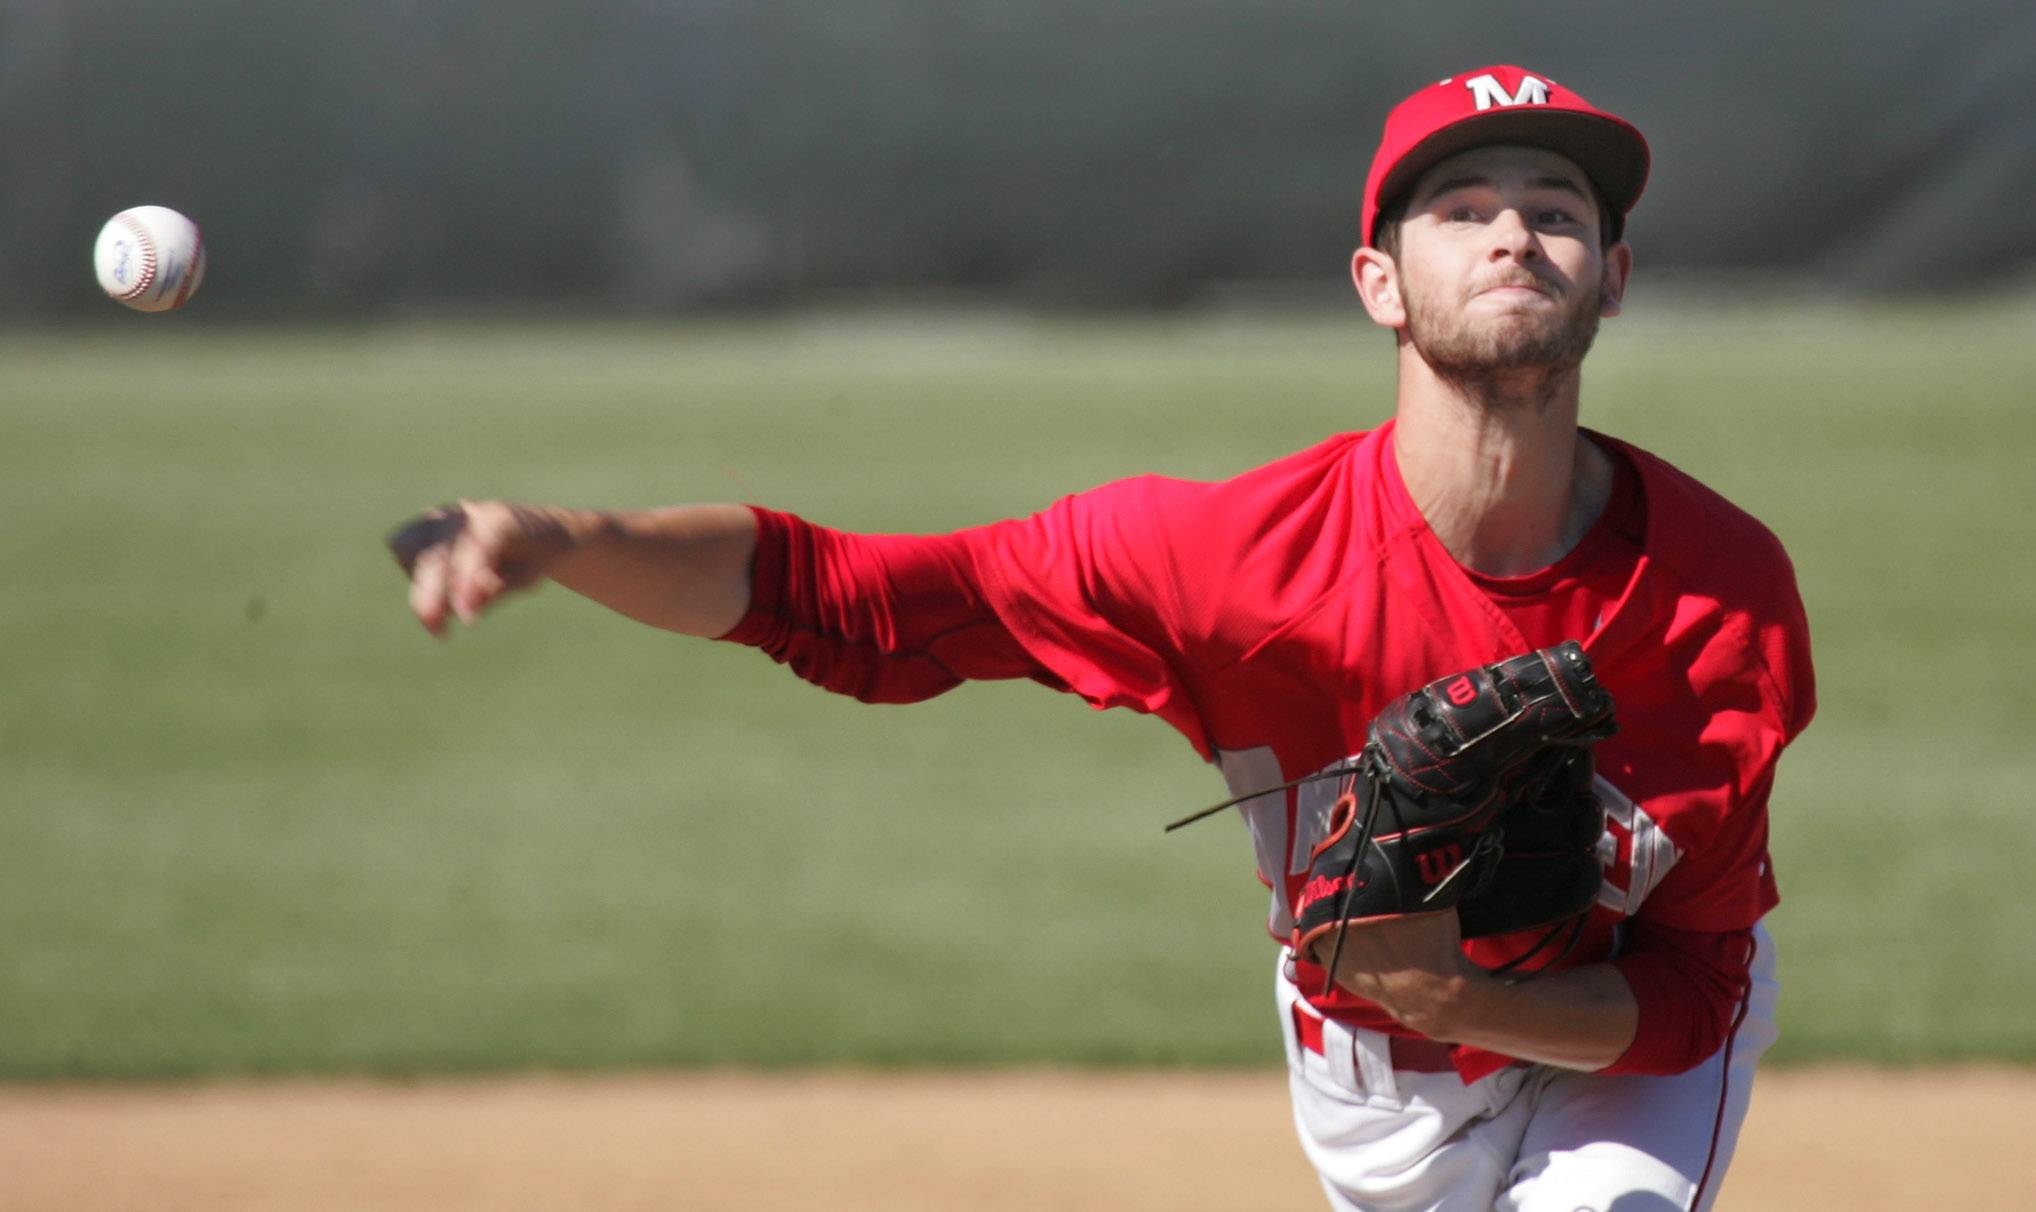 Mundelein pitcher Adam Turner delivers during the Class 4A baseball sectional semifinal Thursday at Glenbrook South.